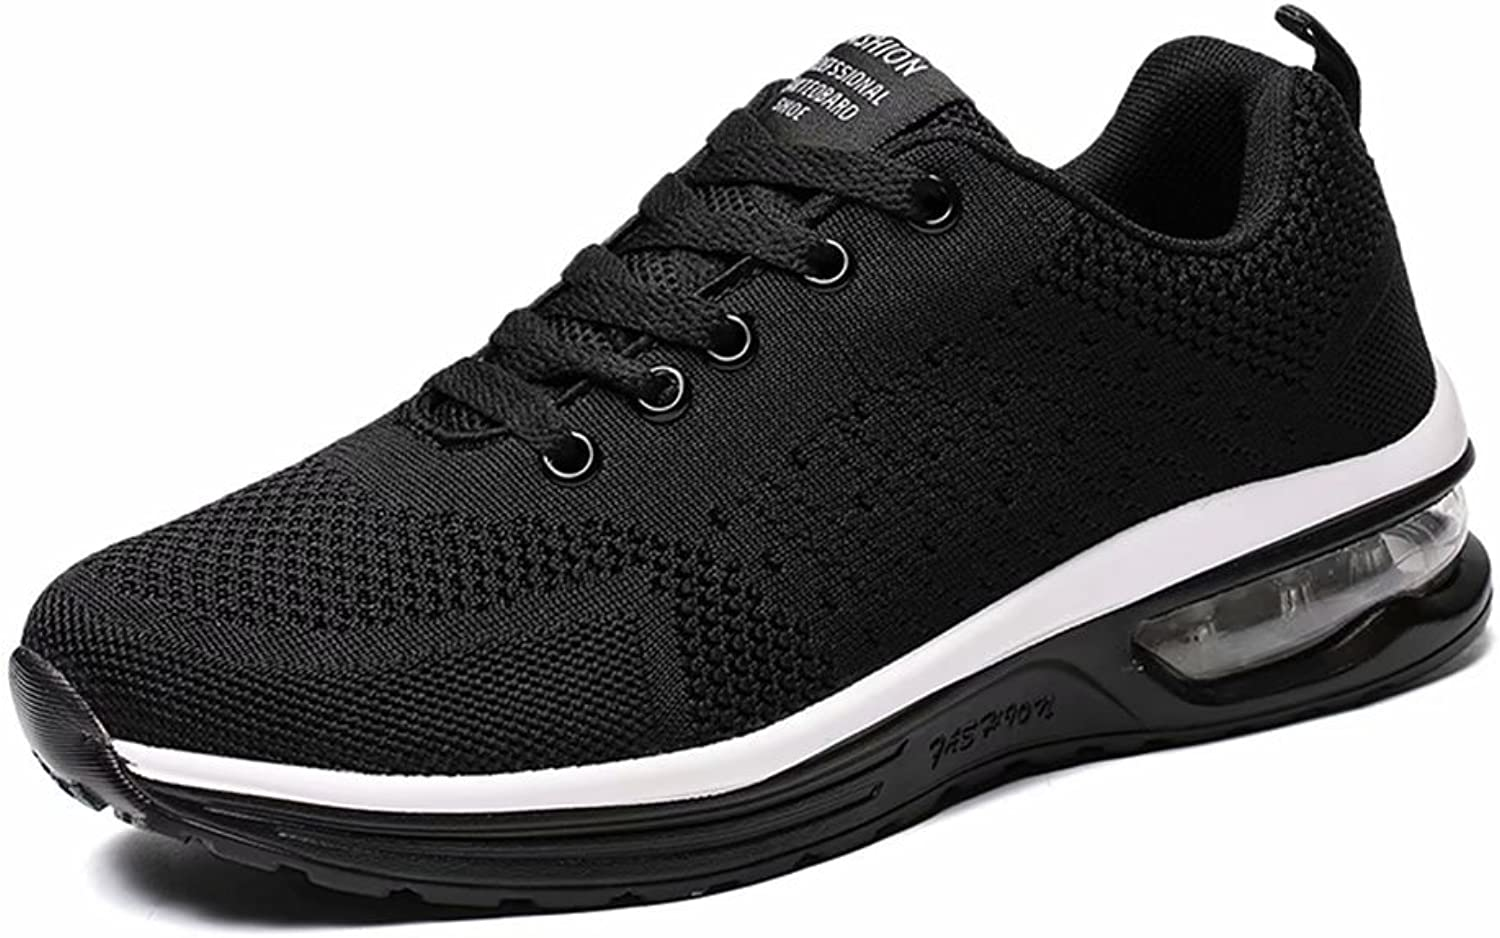 JIAWA Mens Sports Running shoes Womens Cushion Lightweight Athletic Sneakers